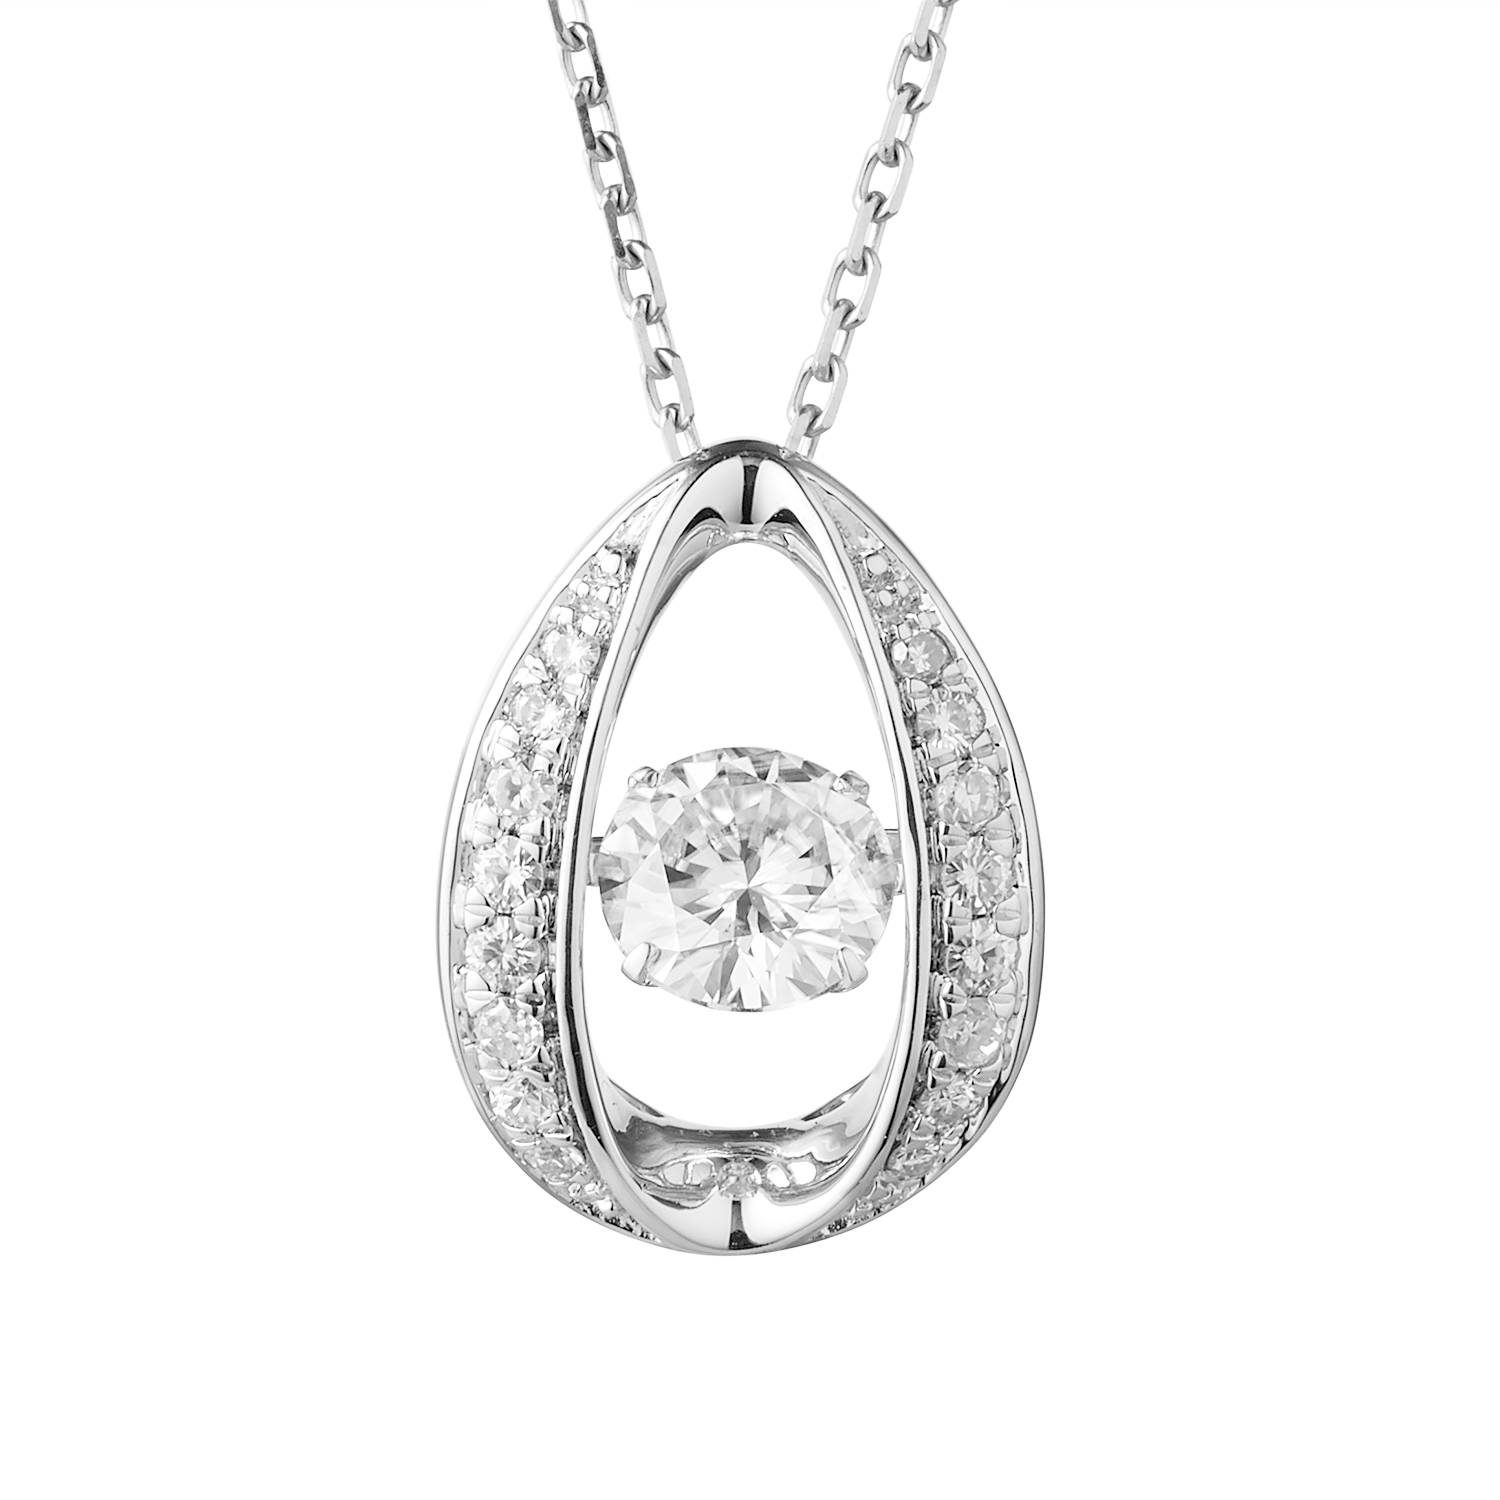 pink henning kristina silver druzy necklaces collections necklace moissanite